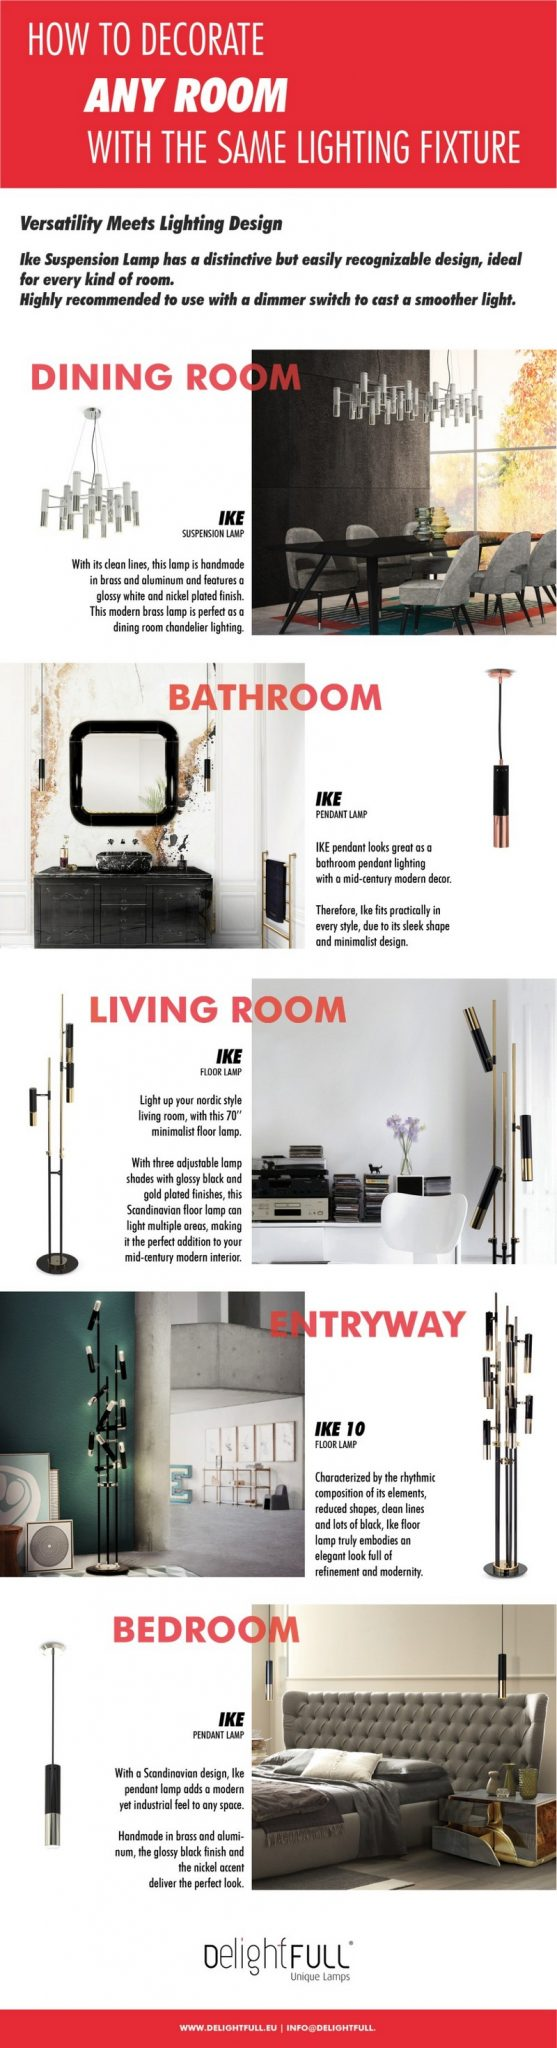 Interior Design Tips - Meet DelightFULL's Stunning Ike Lamp Designs 8